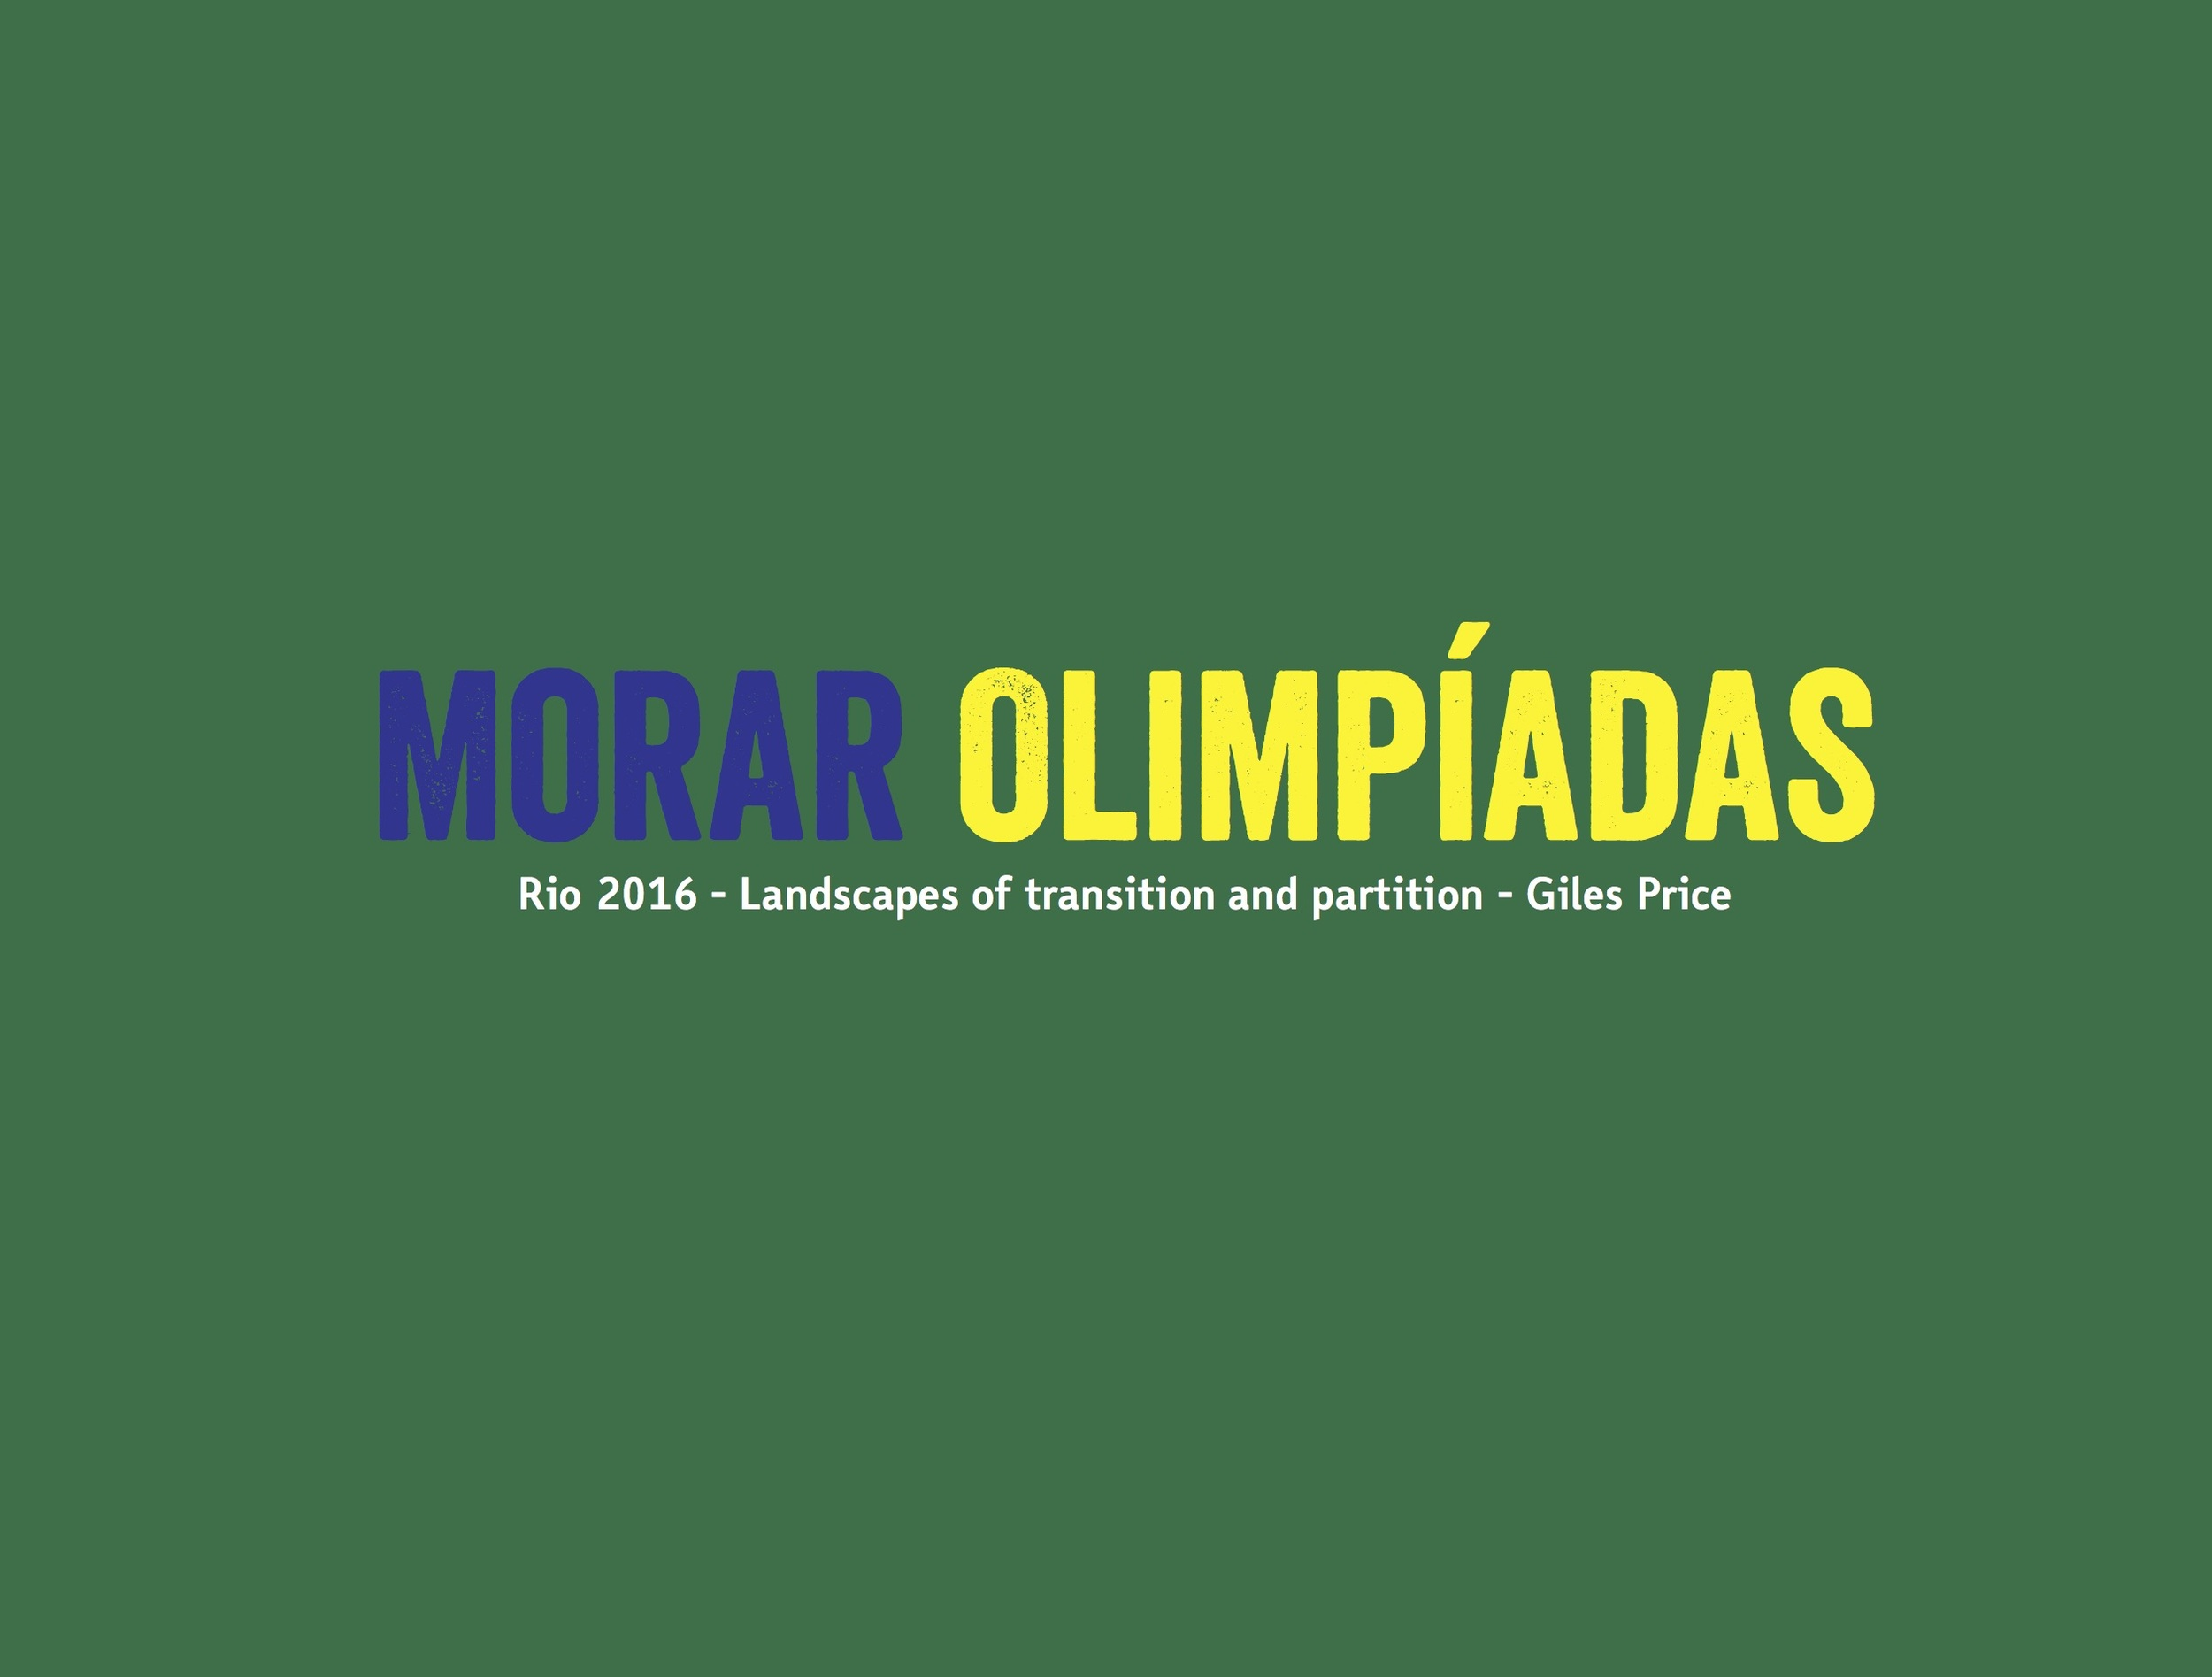 Morar Olimpíadas  (SeeStudio, £30) is published on 25 July 2016 Hardcover, 72 pages with 31 colour images, limited edition of 100.